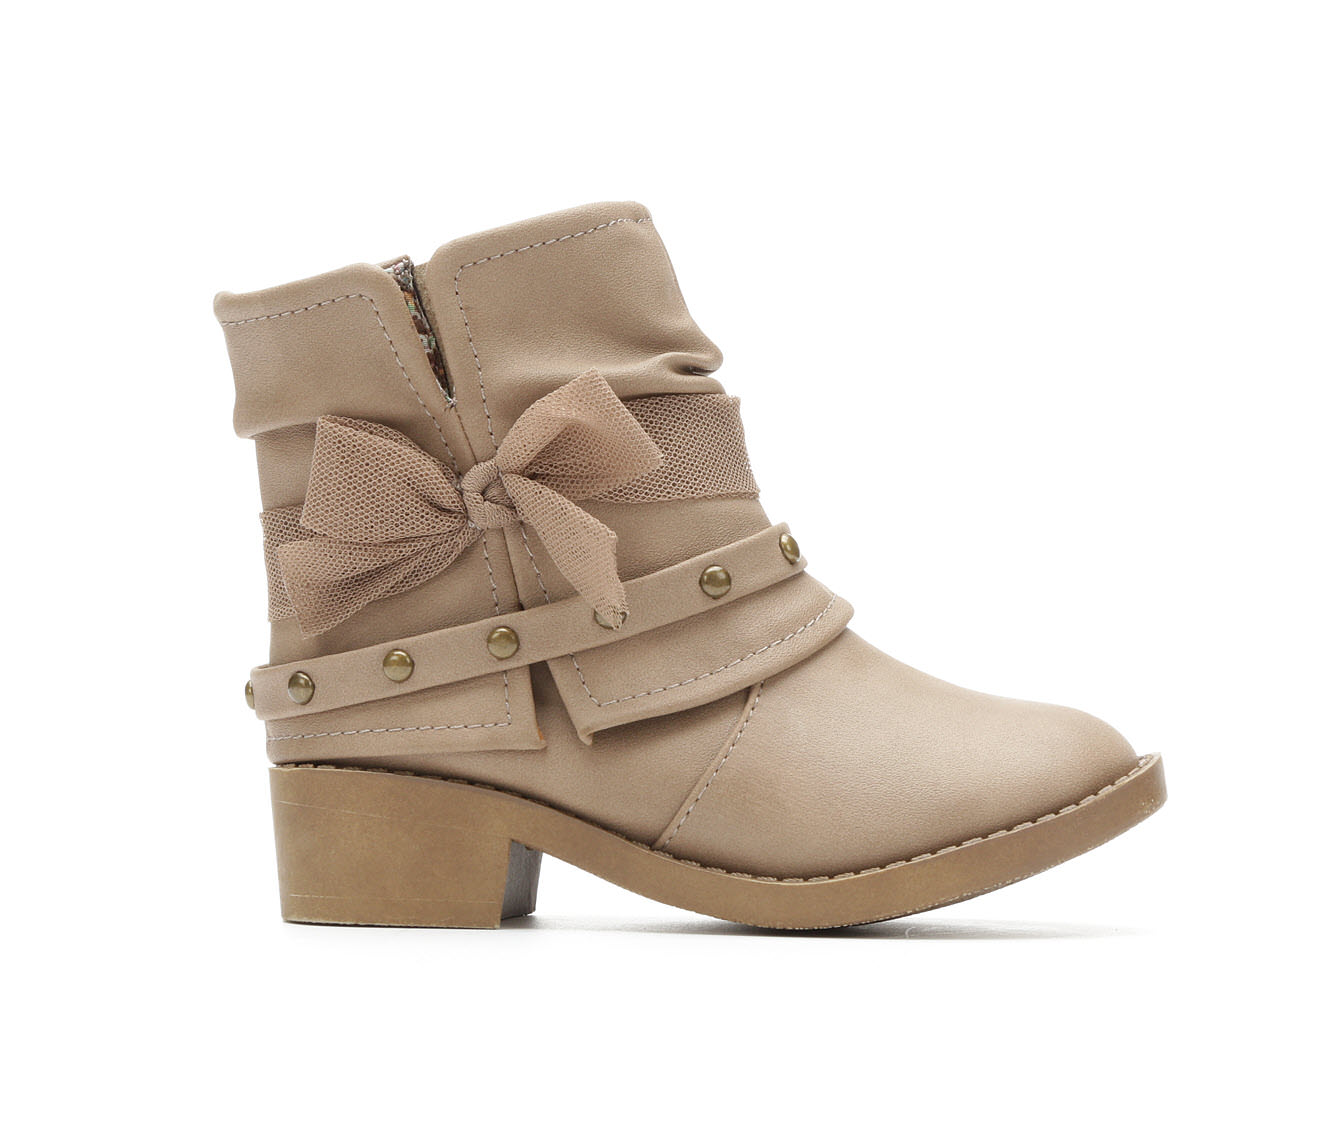 Girls' Y-Not Infant Paige Boots (Beige)